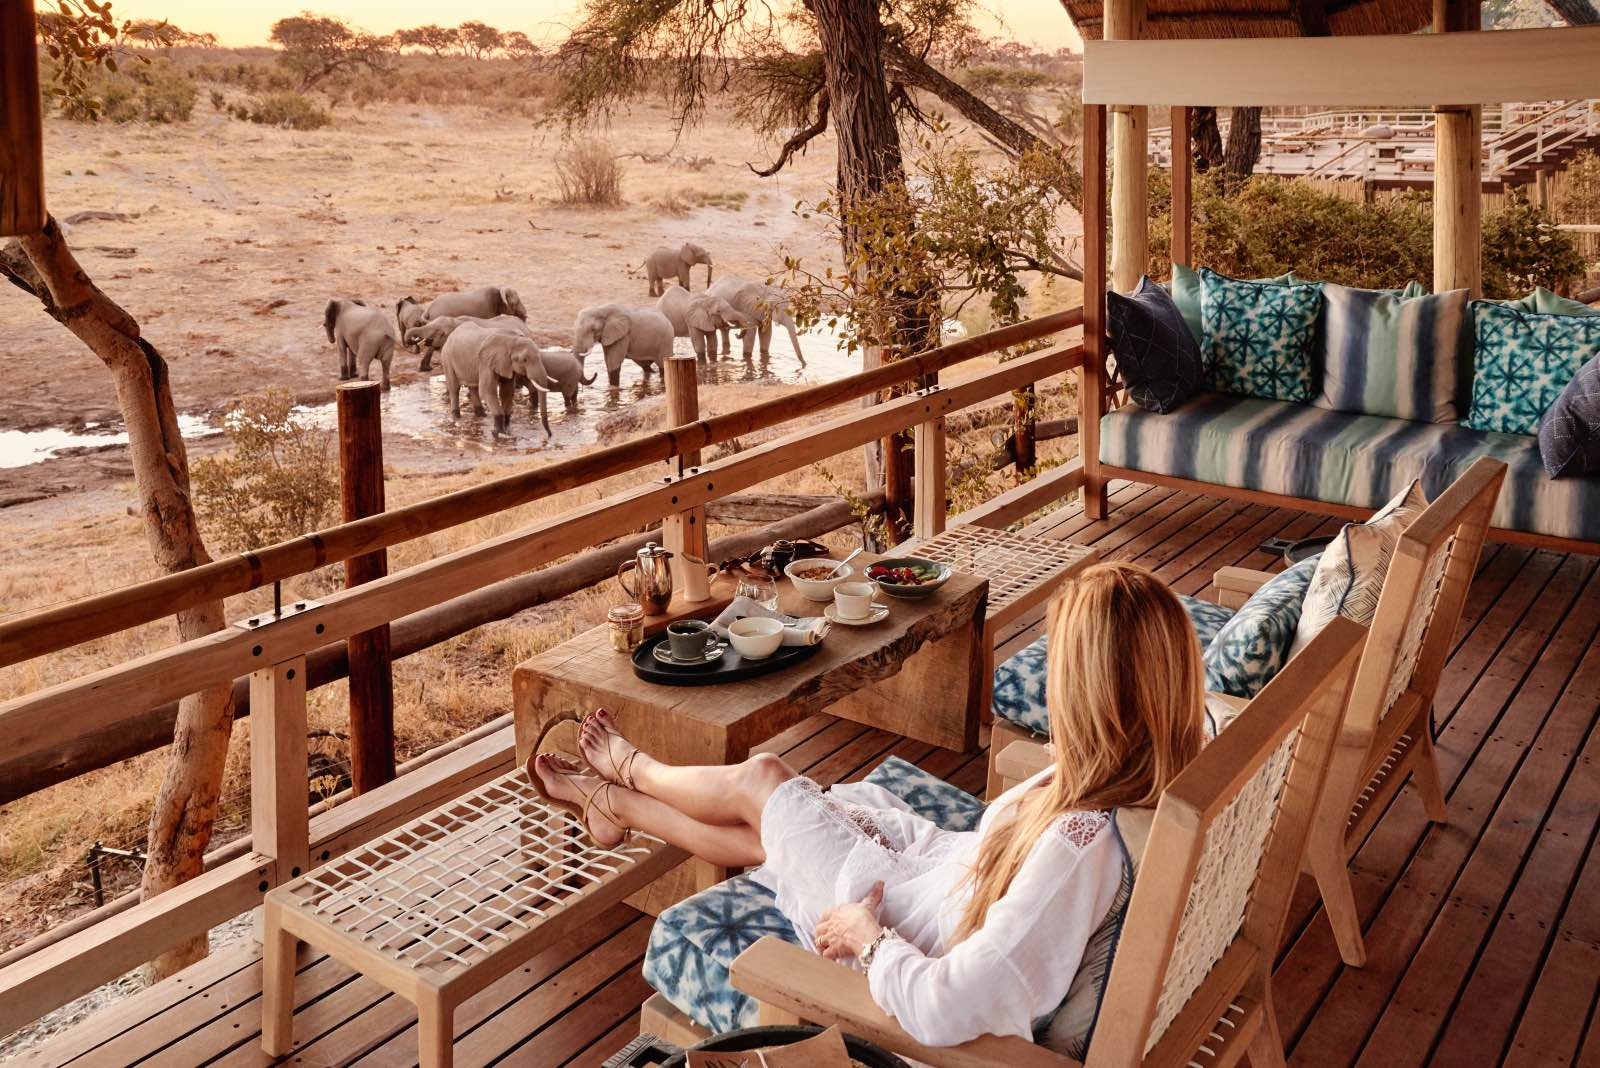 Elephants in front of the lodge while guest looks on at Savute Elephant Lodge